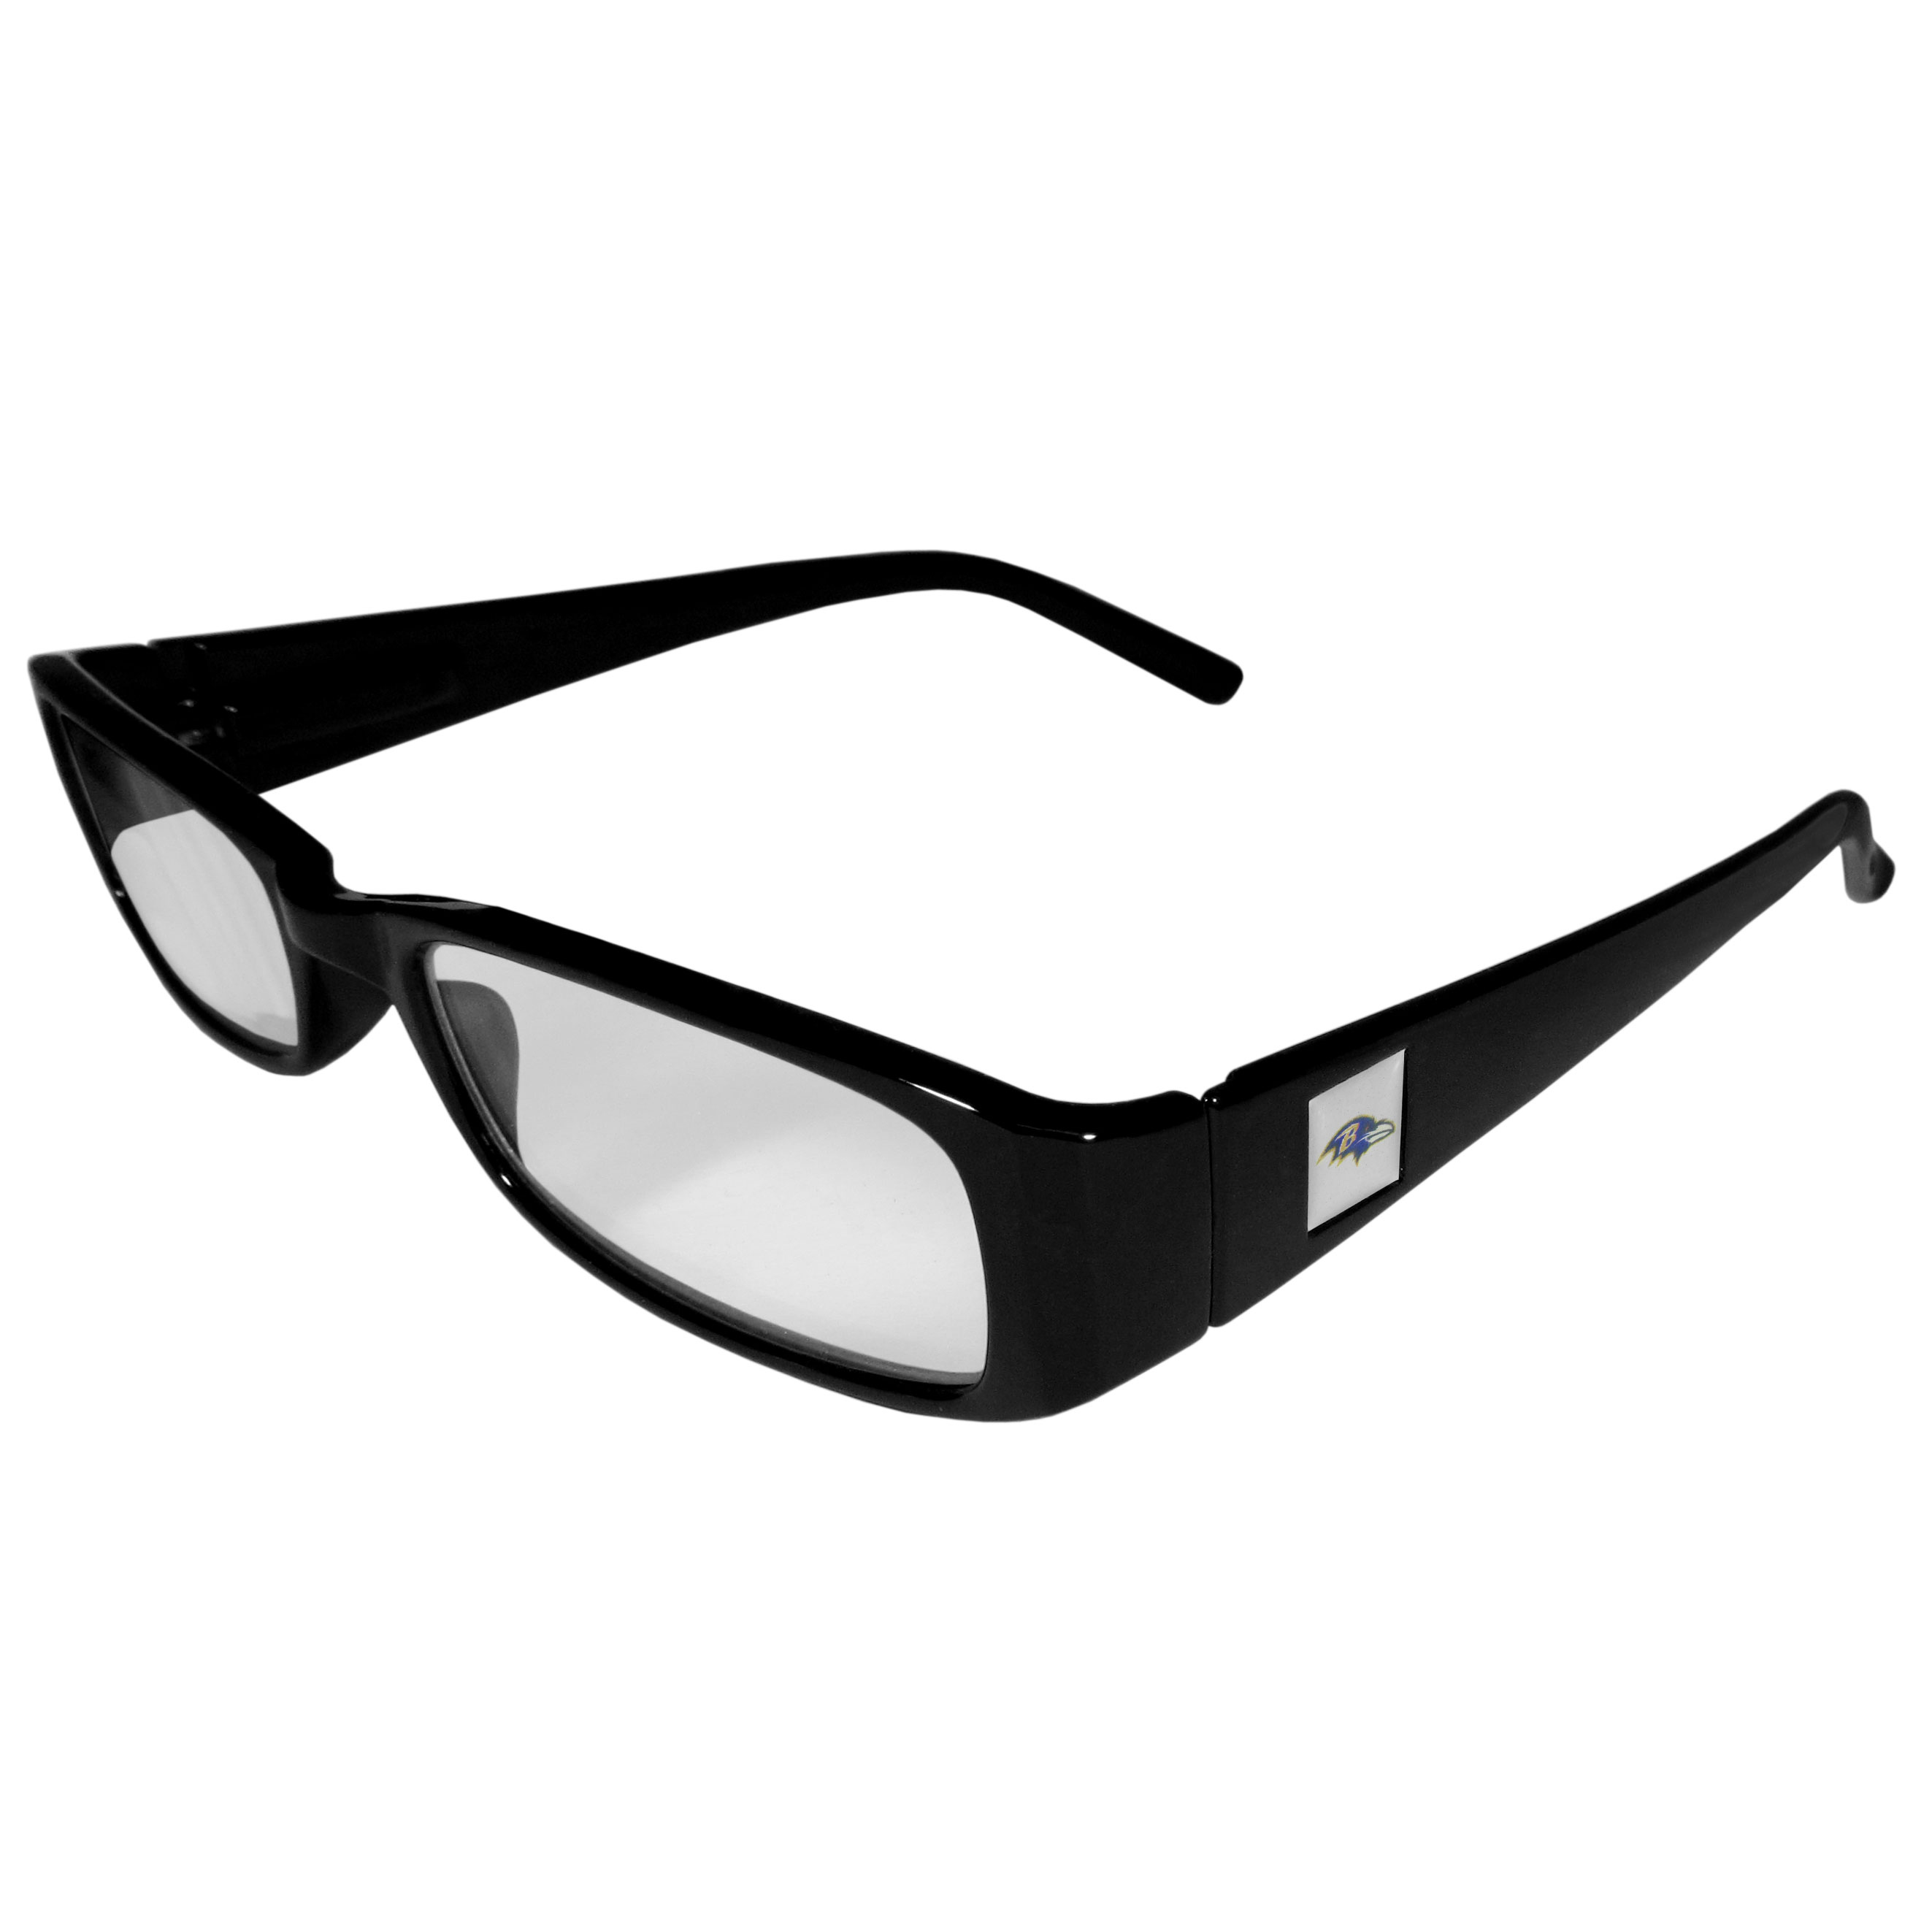 Baltimore Ravens Black Reading Glasses +1.25 - Our Baltimore Ravens reading glasses are 5.25 inches wide and feature the team logo on each arm. Magnification Power 1.25